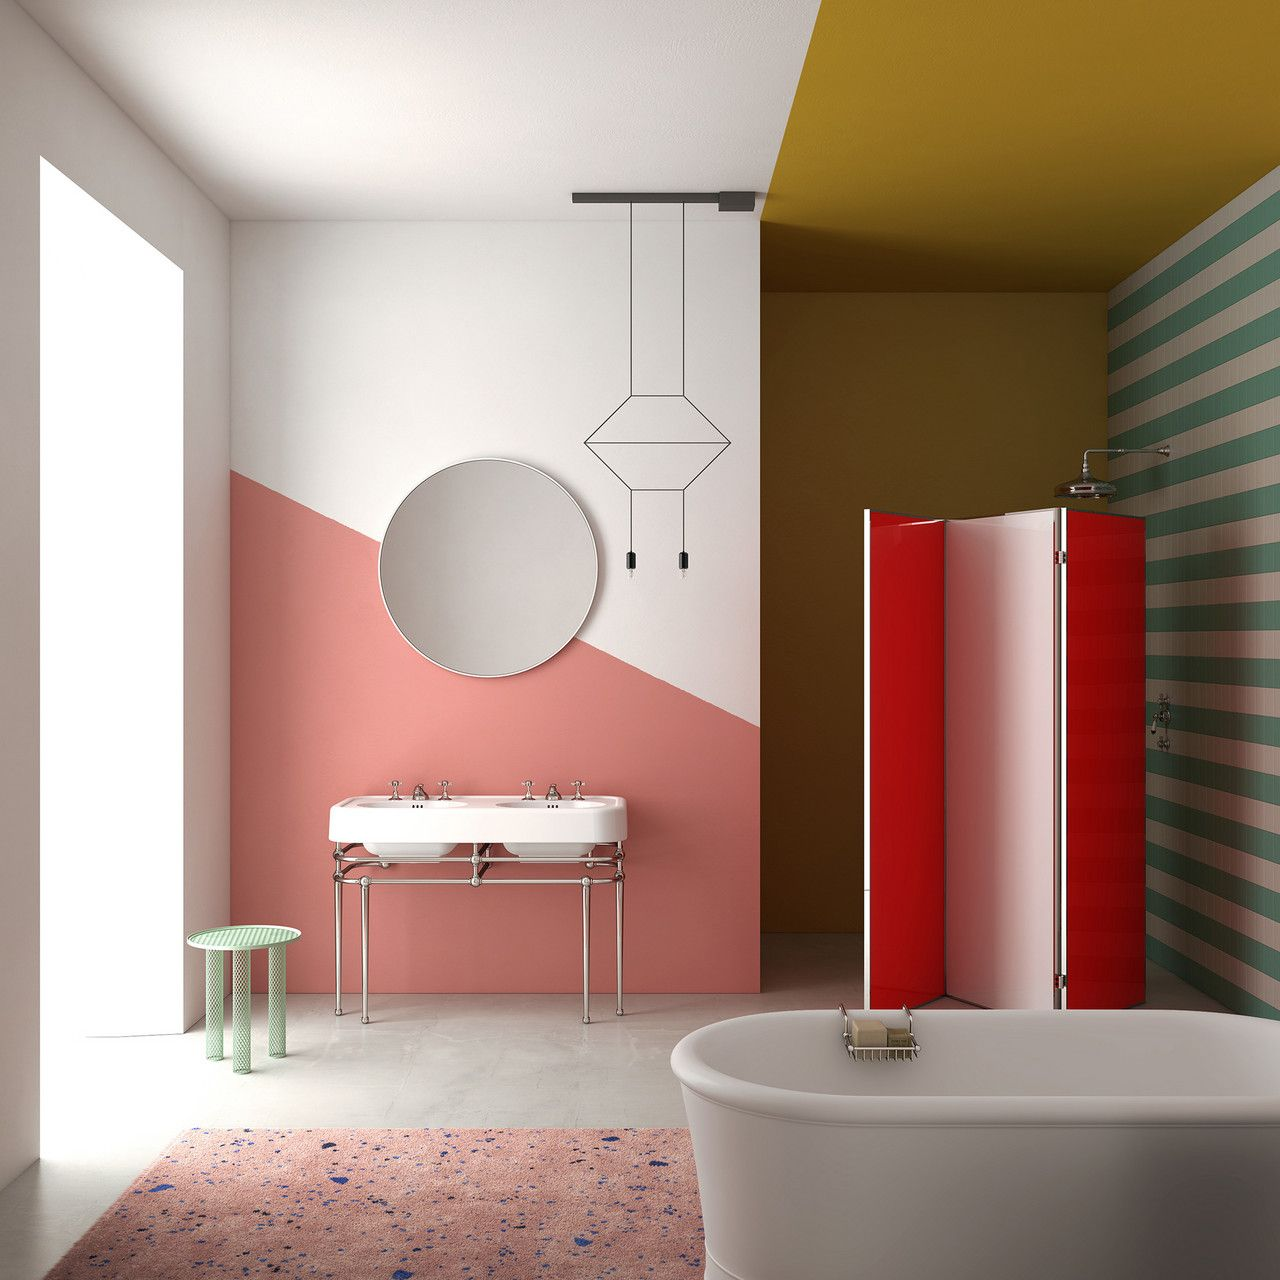 Two Toned Walls In Bathroom Trend Paint And Tile Ideas Bathroom Trends Bathroom Paint Colors Best Bathroom Paint Colors